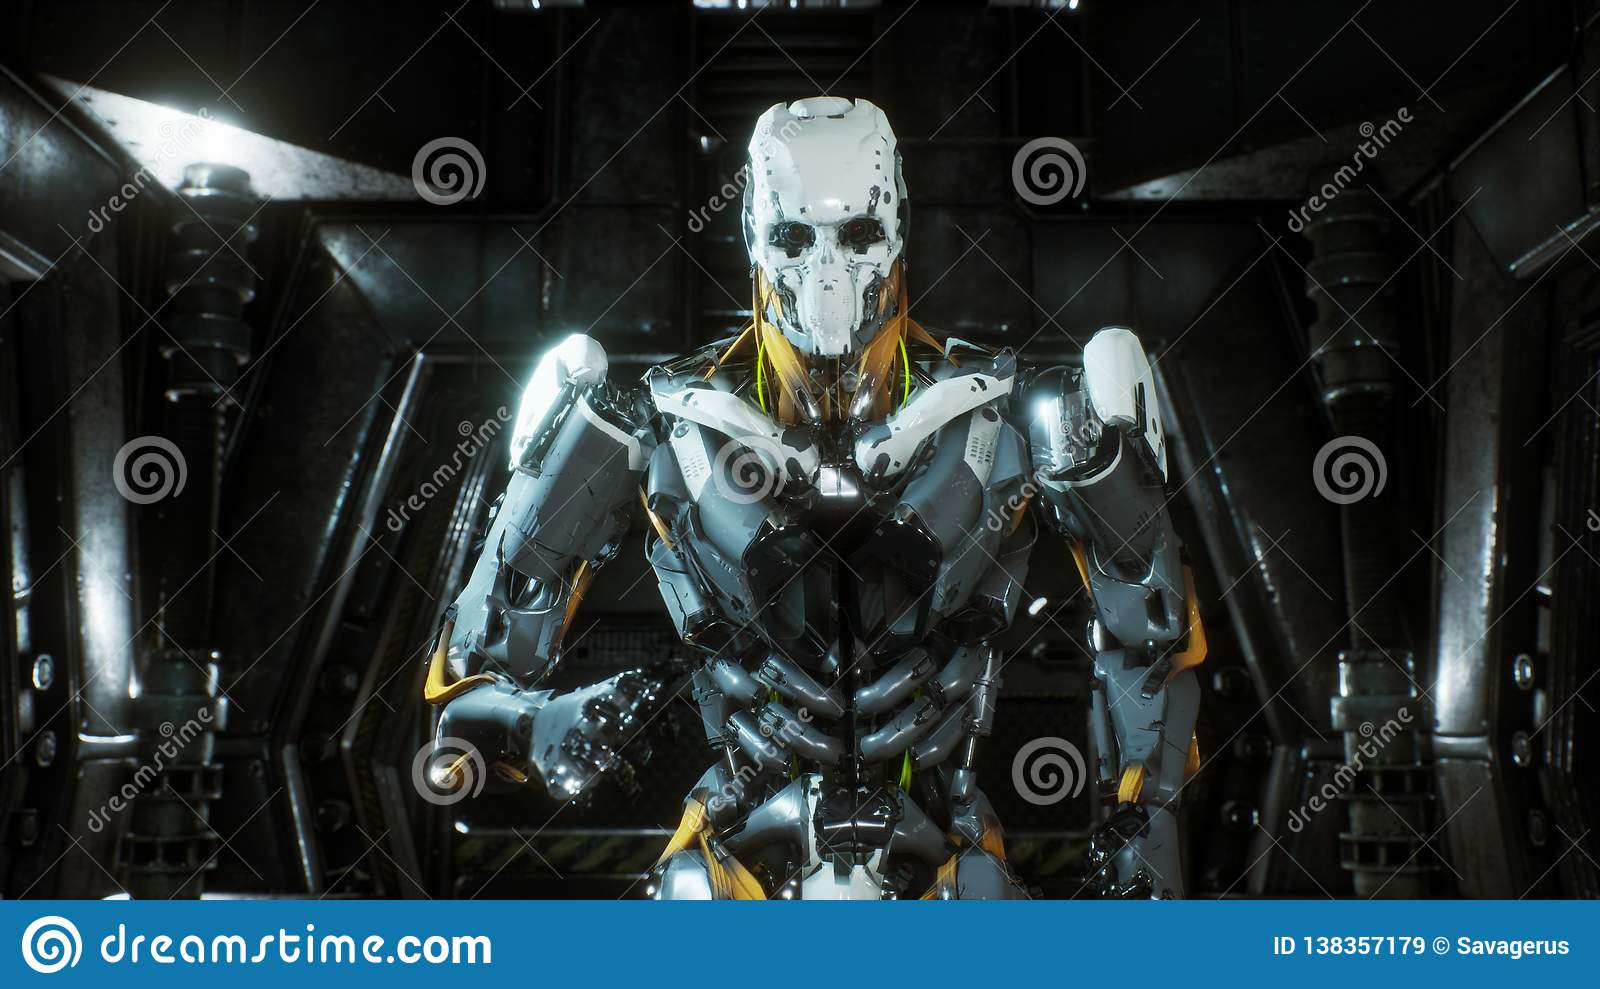 Robot soldier runs through a futuristic Sci-Fi tunnel with sparks and smoke, interior view. 3D Rendering